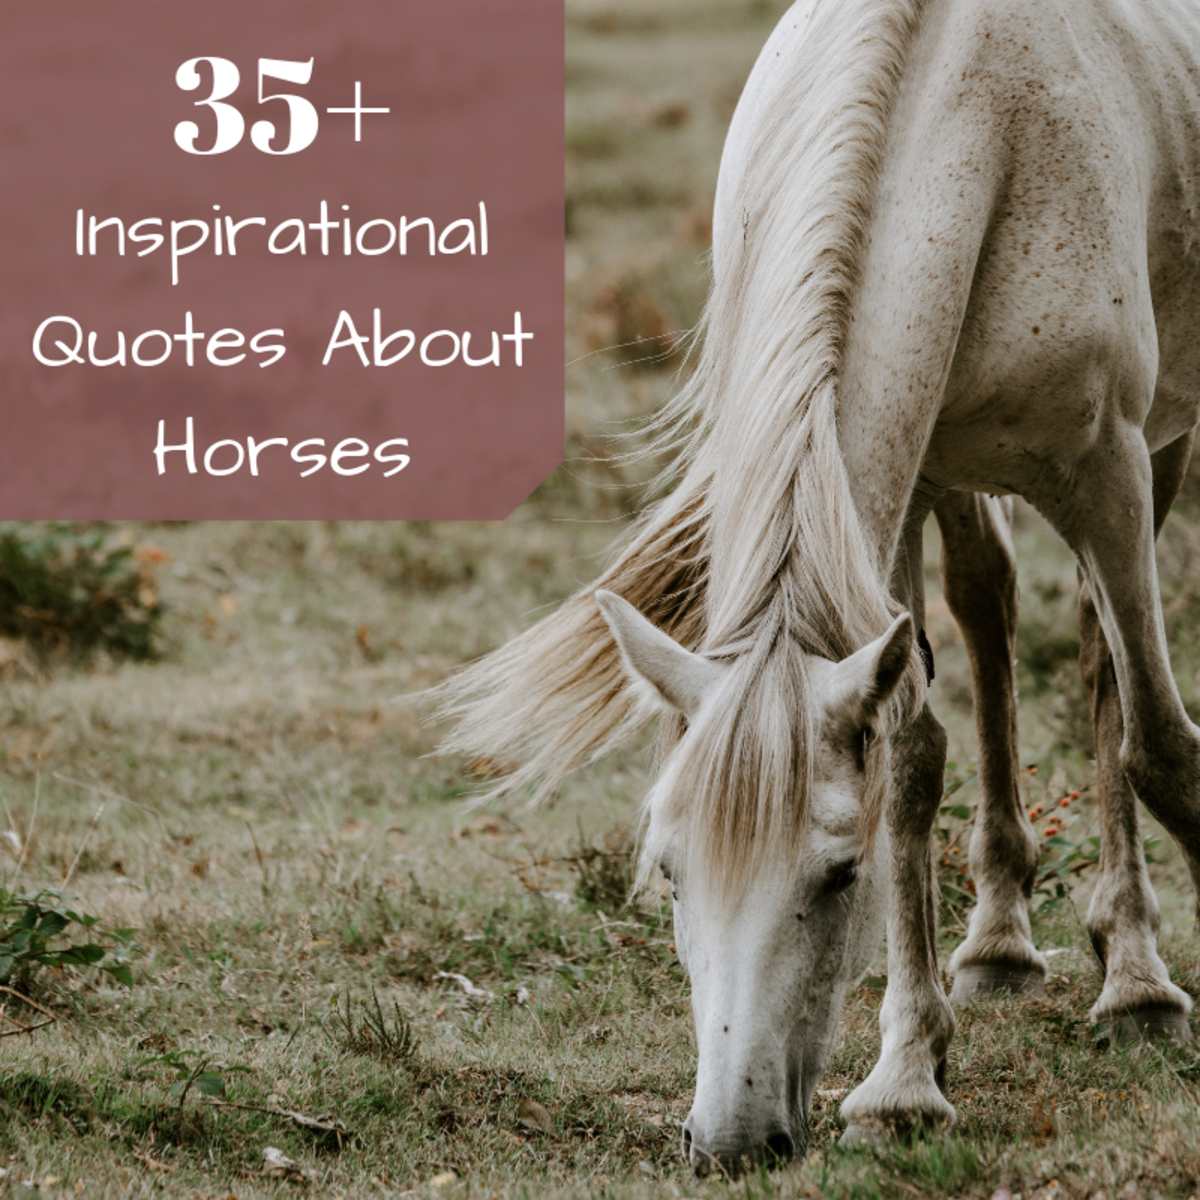 Inspirational Horse Quotes From Famous Historical Equestrians